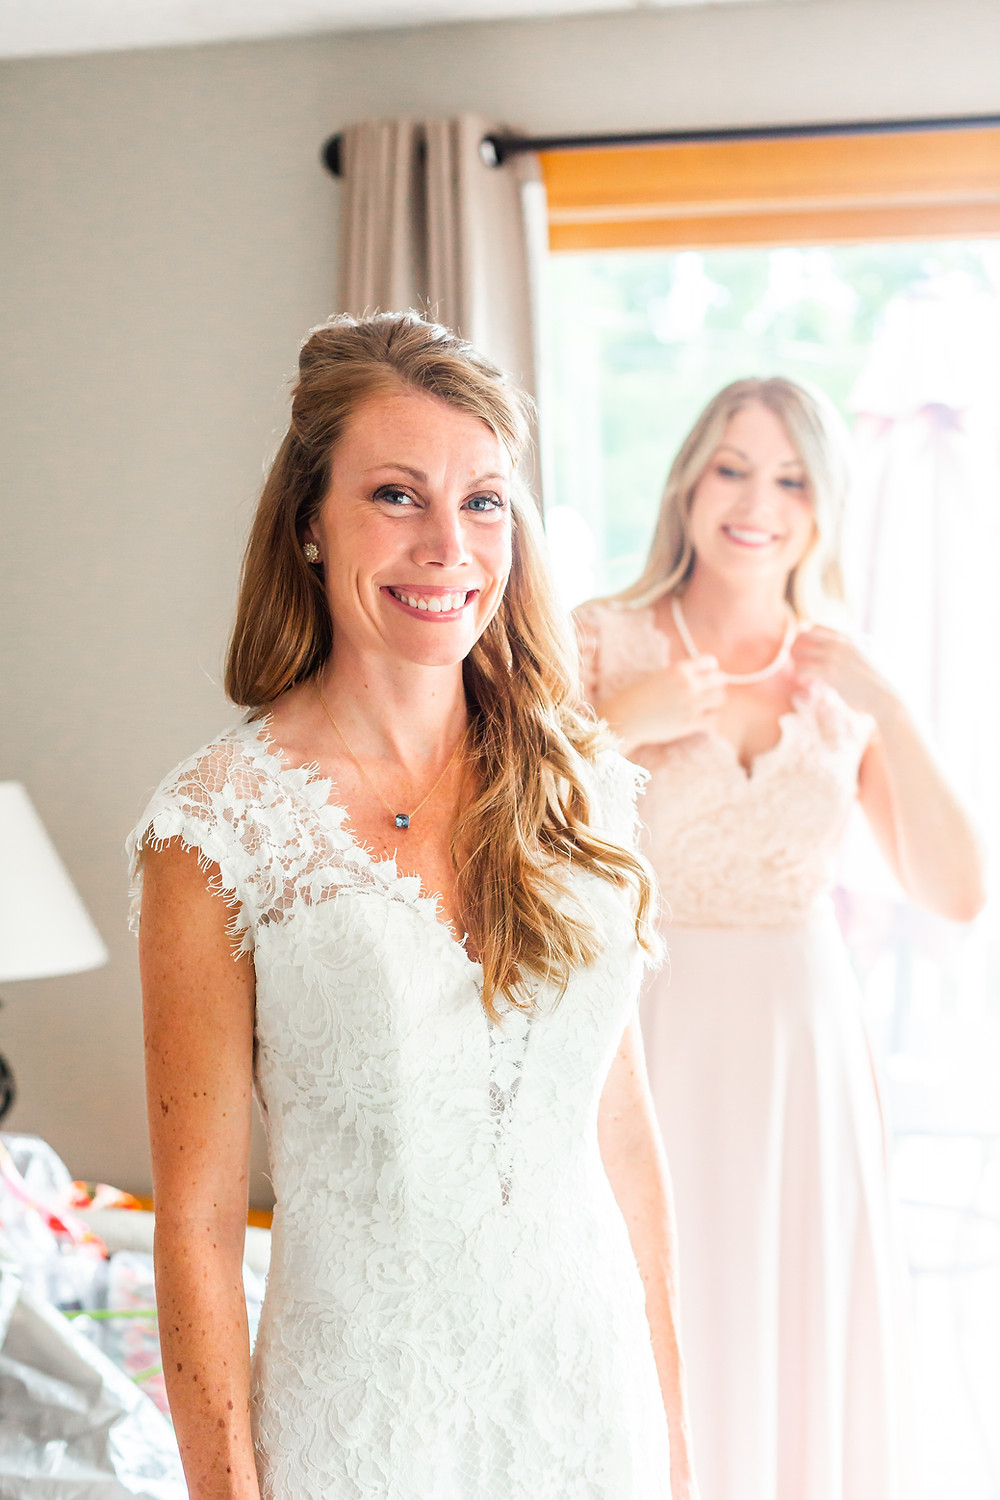 New Hampshire Wedding Photographer captures the bride glowing just before the ceremony at grandview resort.